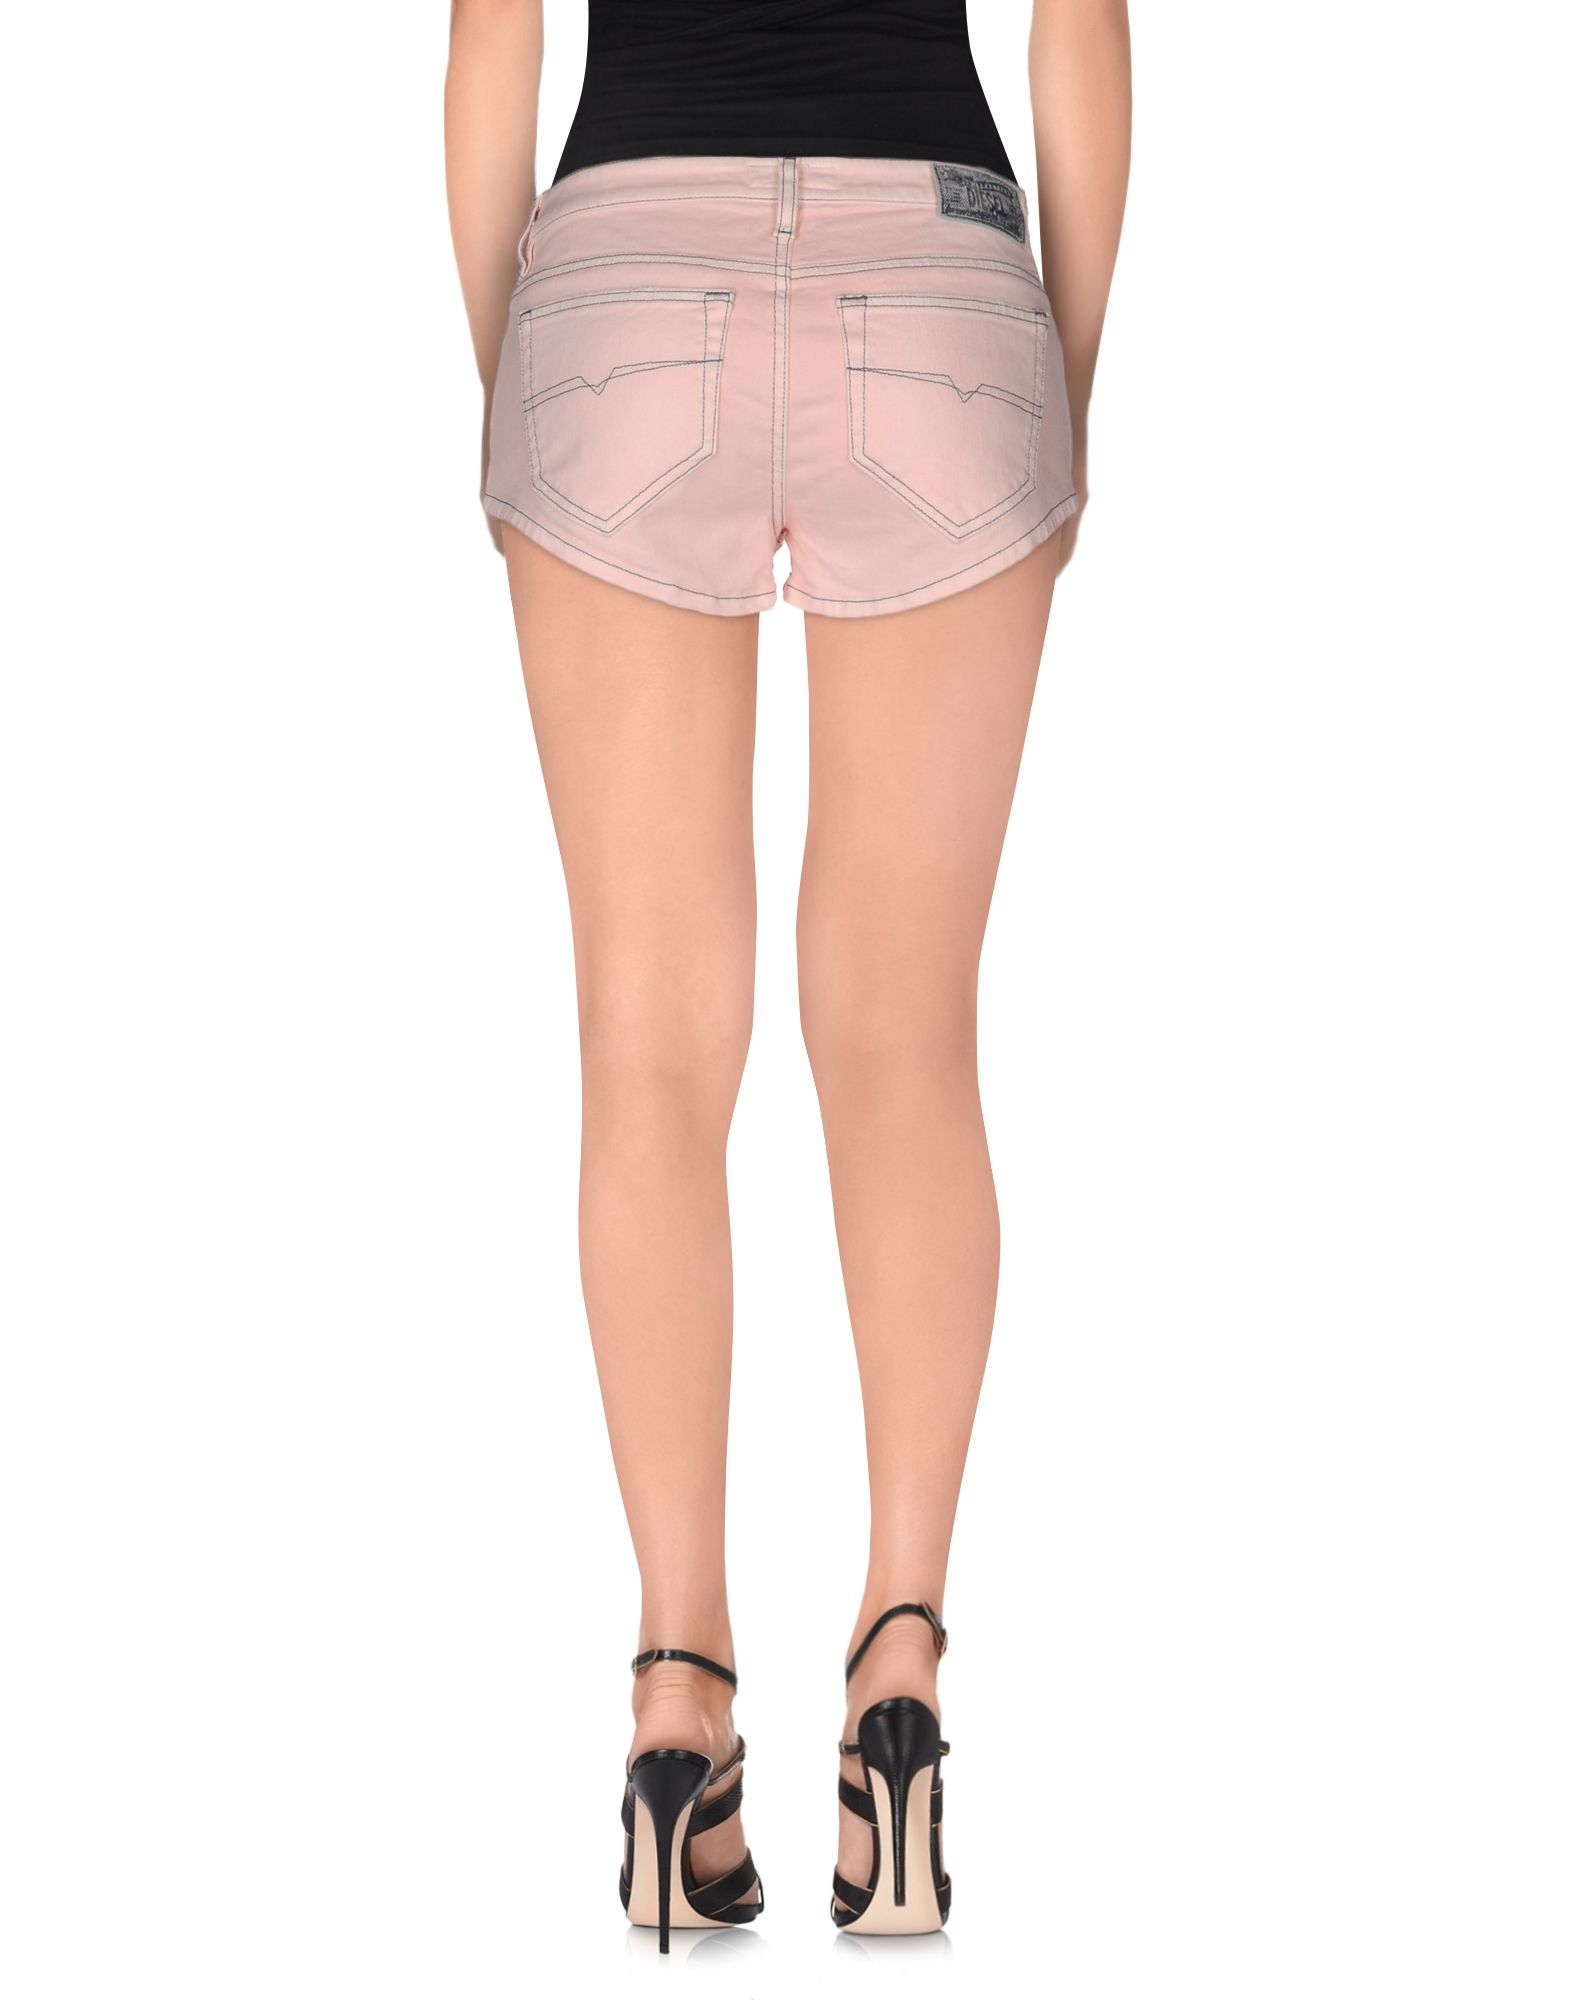 Shop PINK Victoria's Secret Women's Shorts - Jean Shorts at up to 70% off! Get the lowest price on your favorite brands at Poshmark. Poshmark makes shopping fun, affordable & easy!